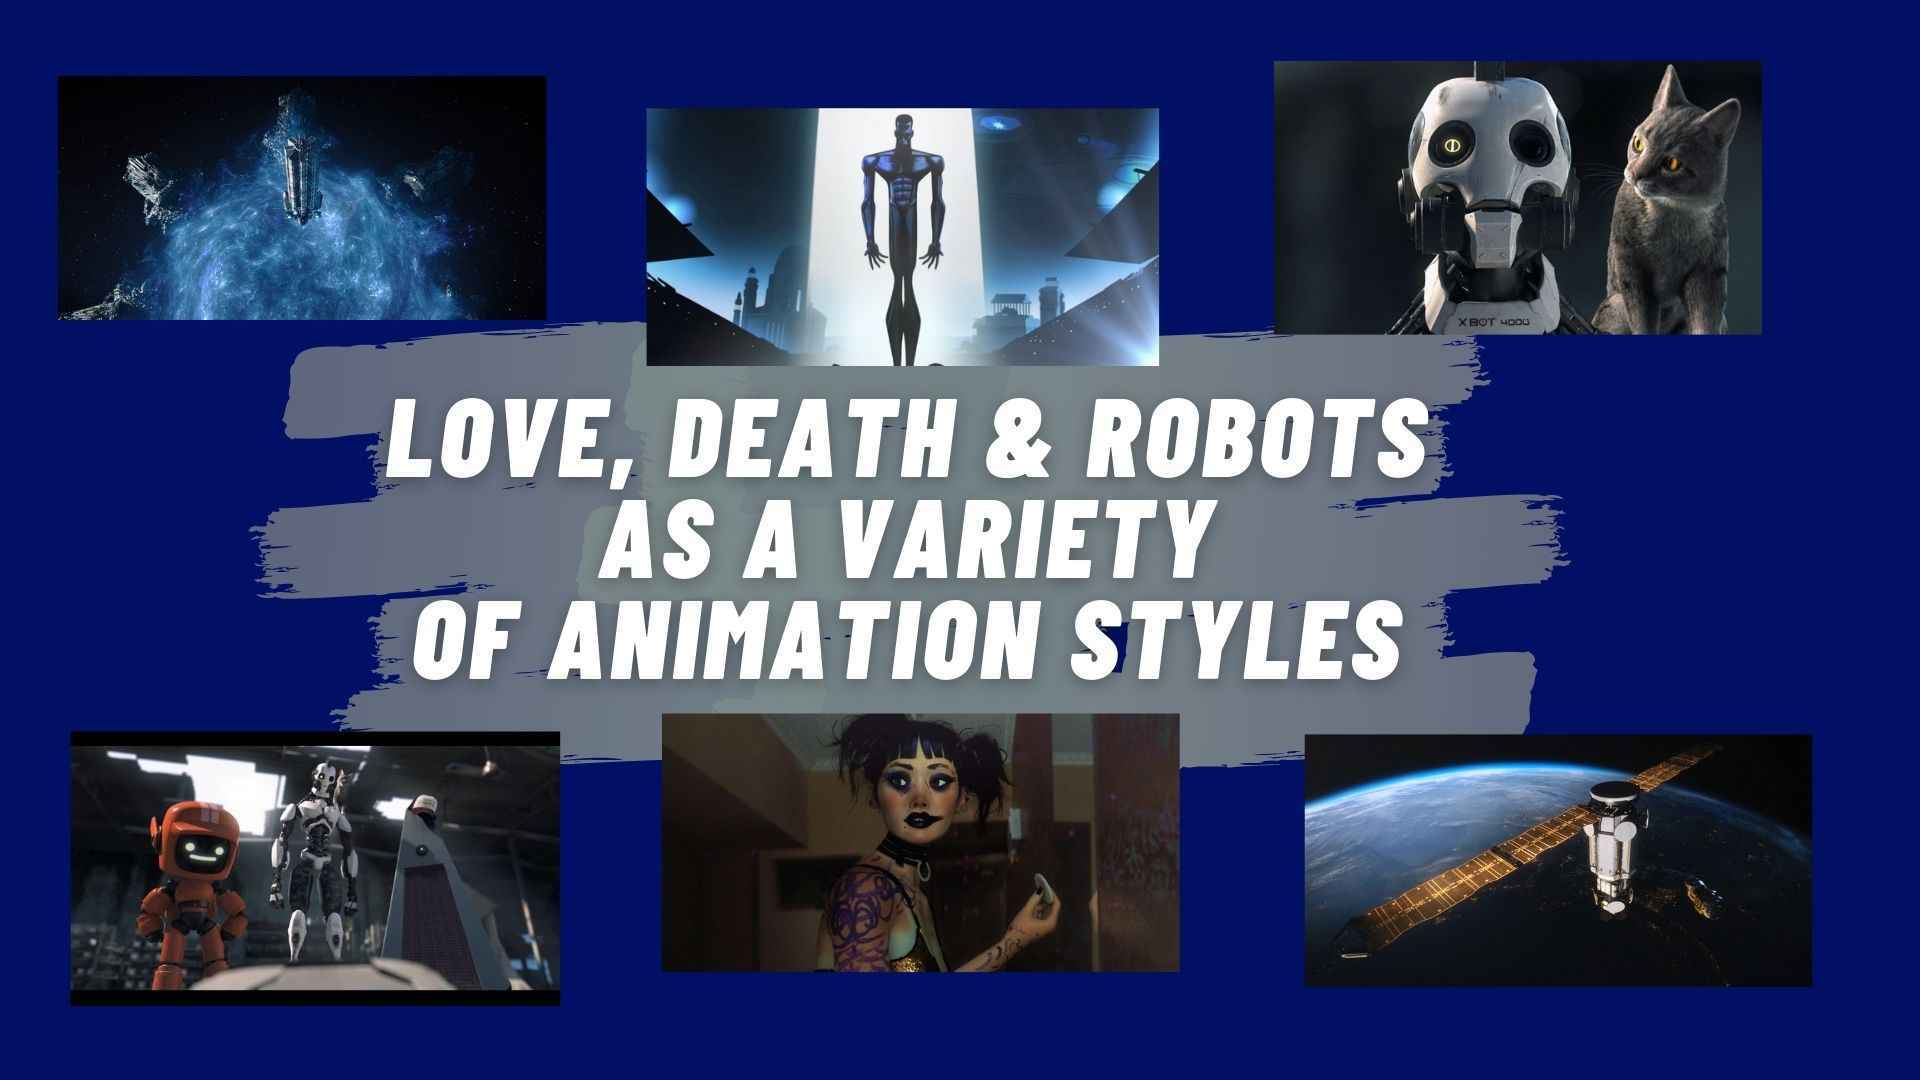 Love, death & robots as a variety of animation styles